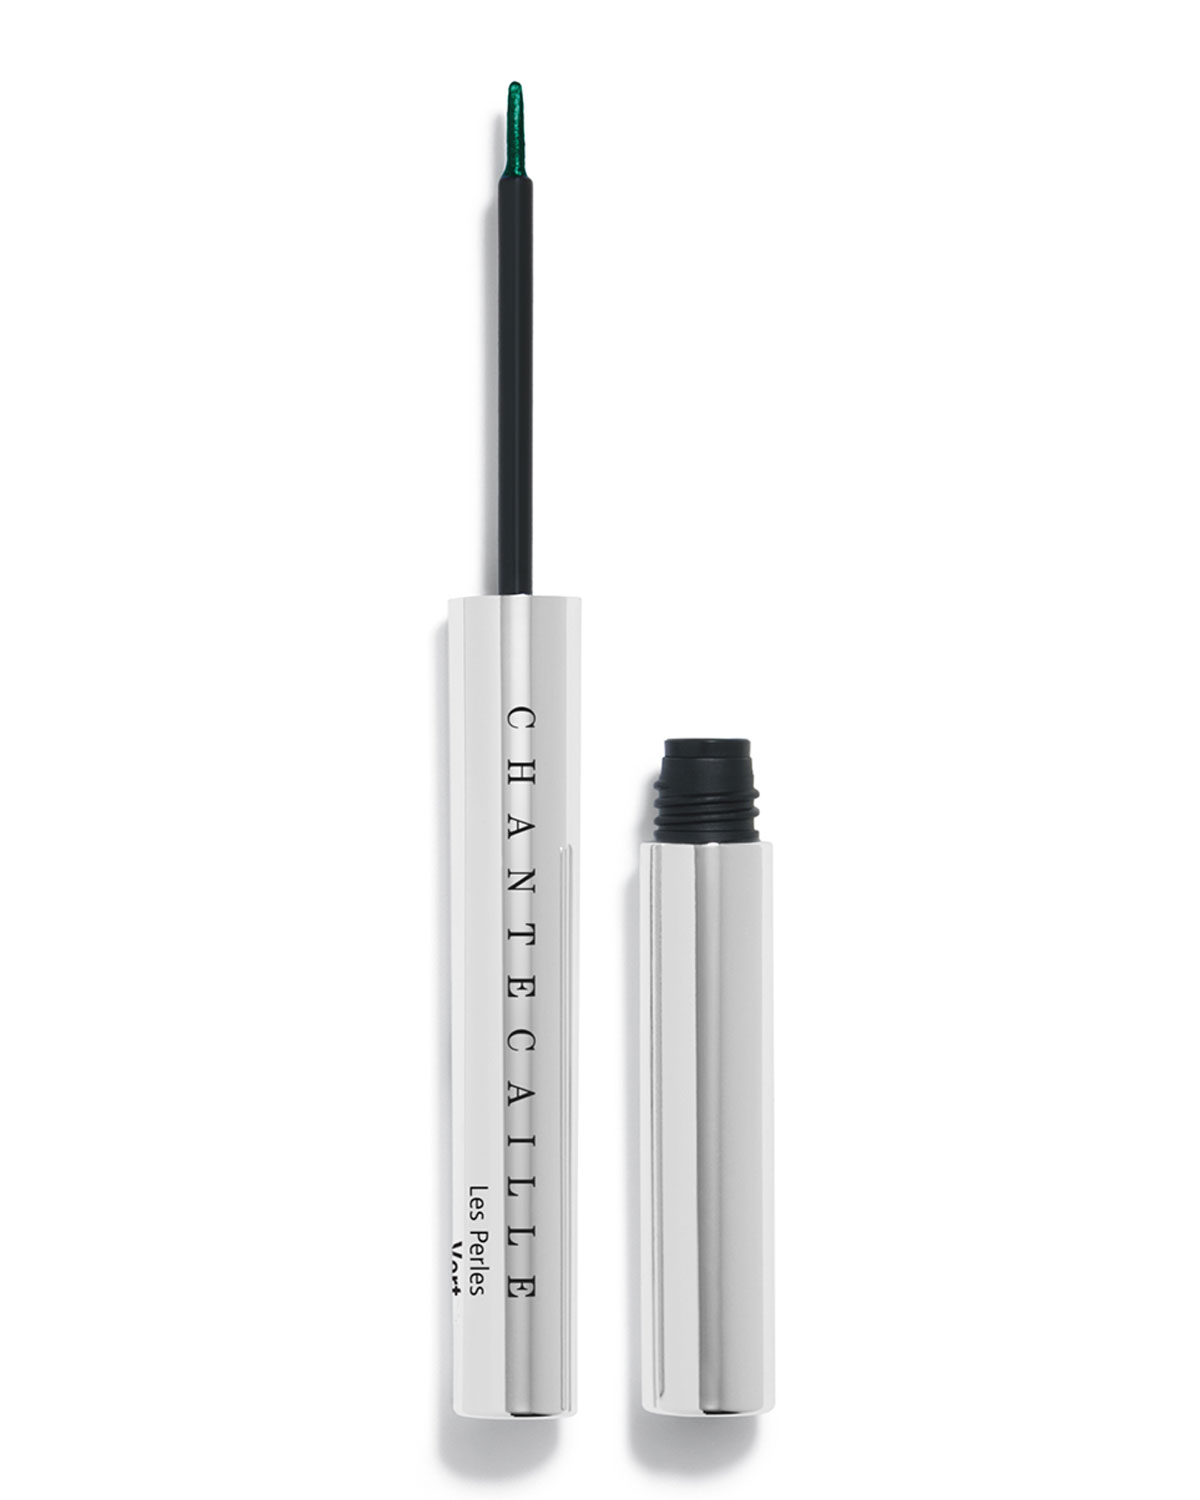 Les Perles Metallic Eye Liner